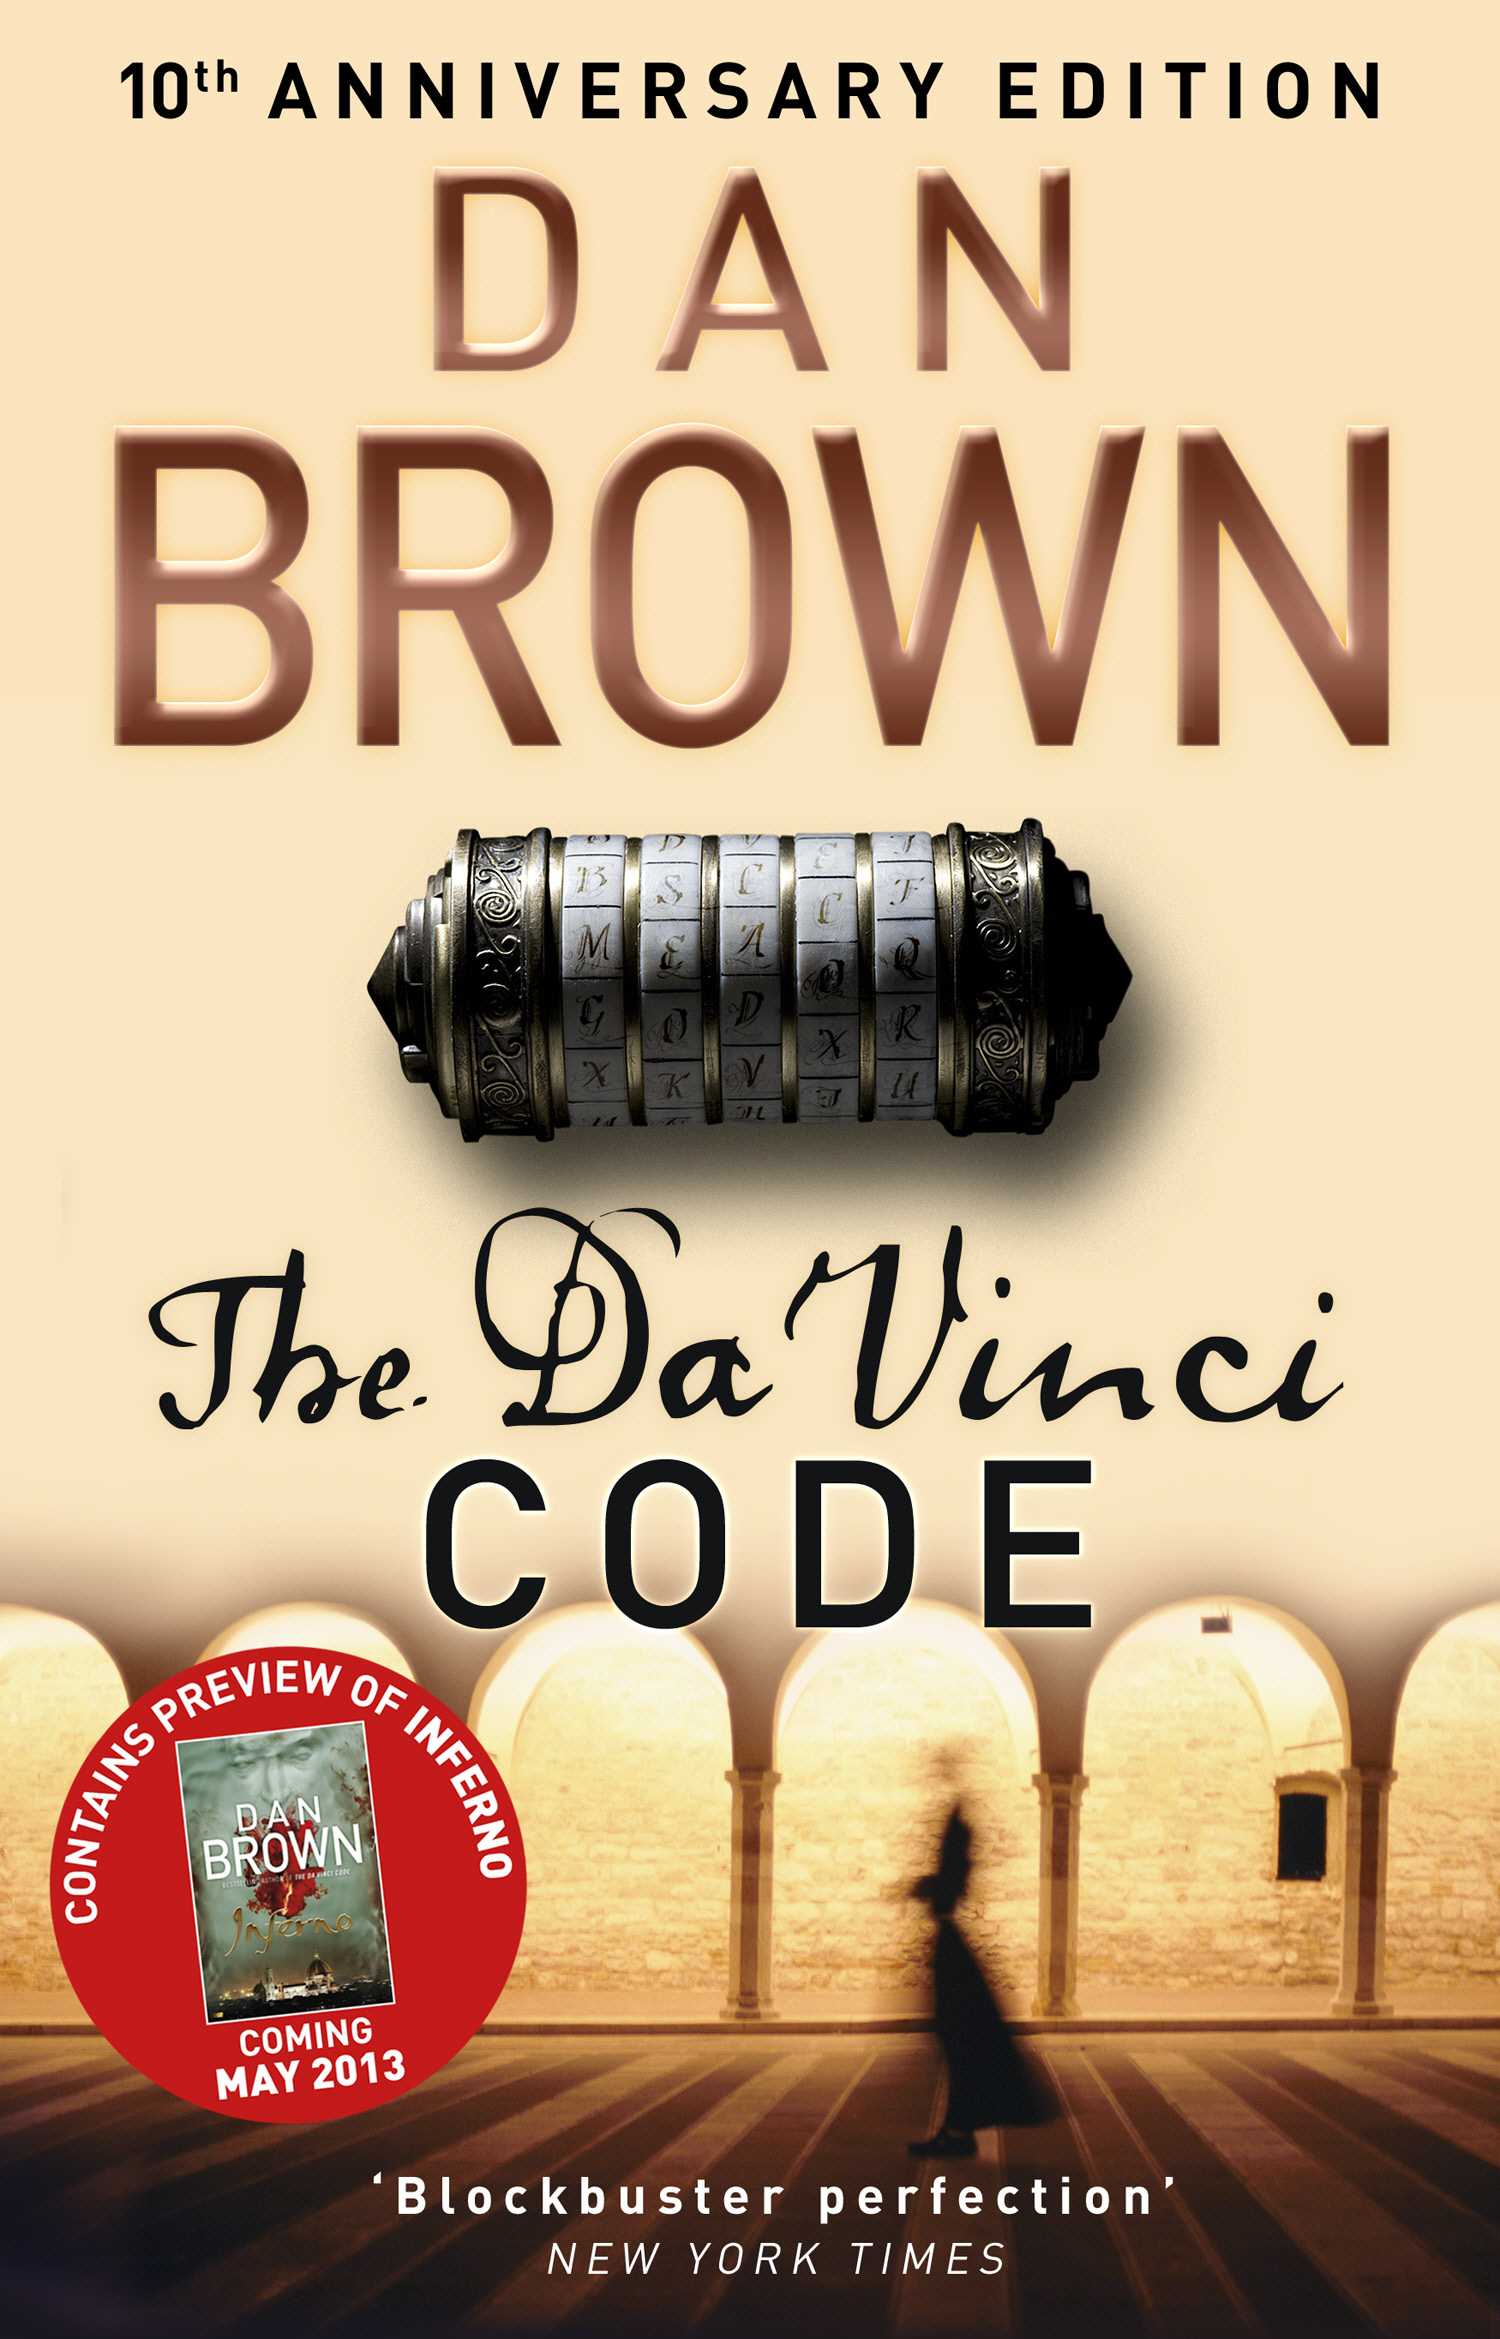 The Da Vinci Code (Robert Langdon Book 2)